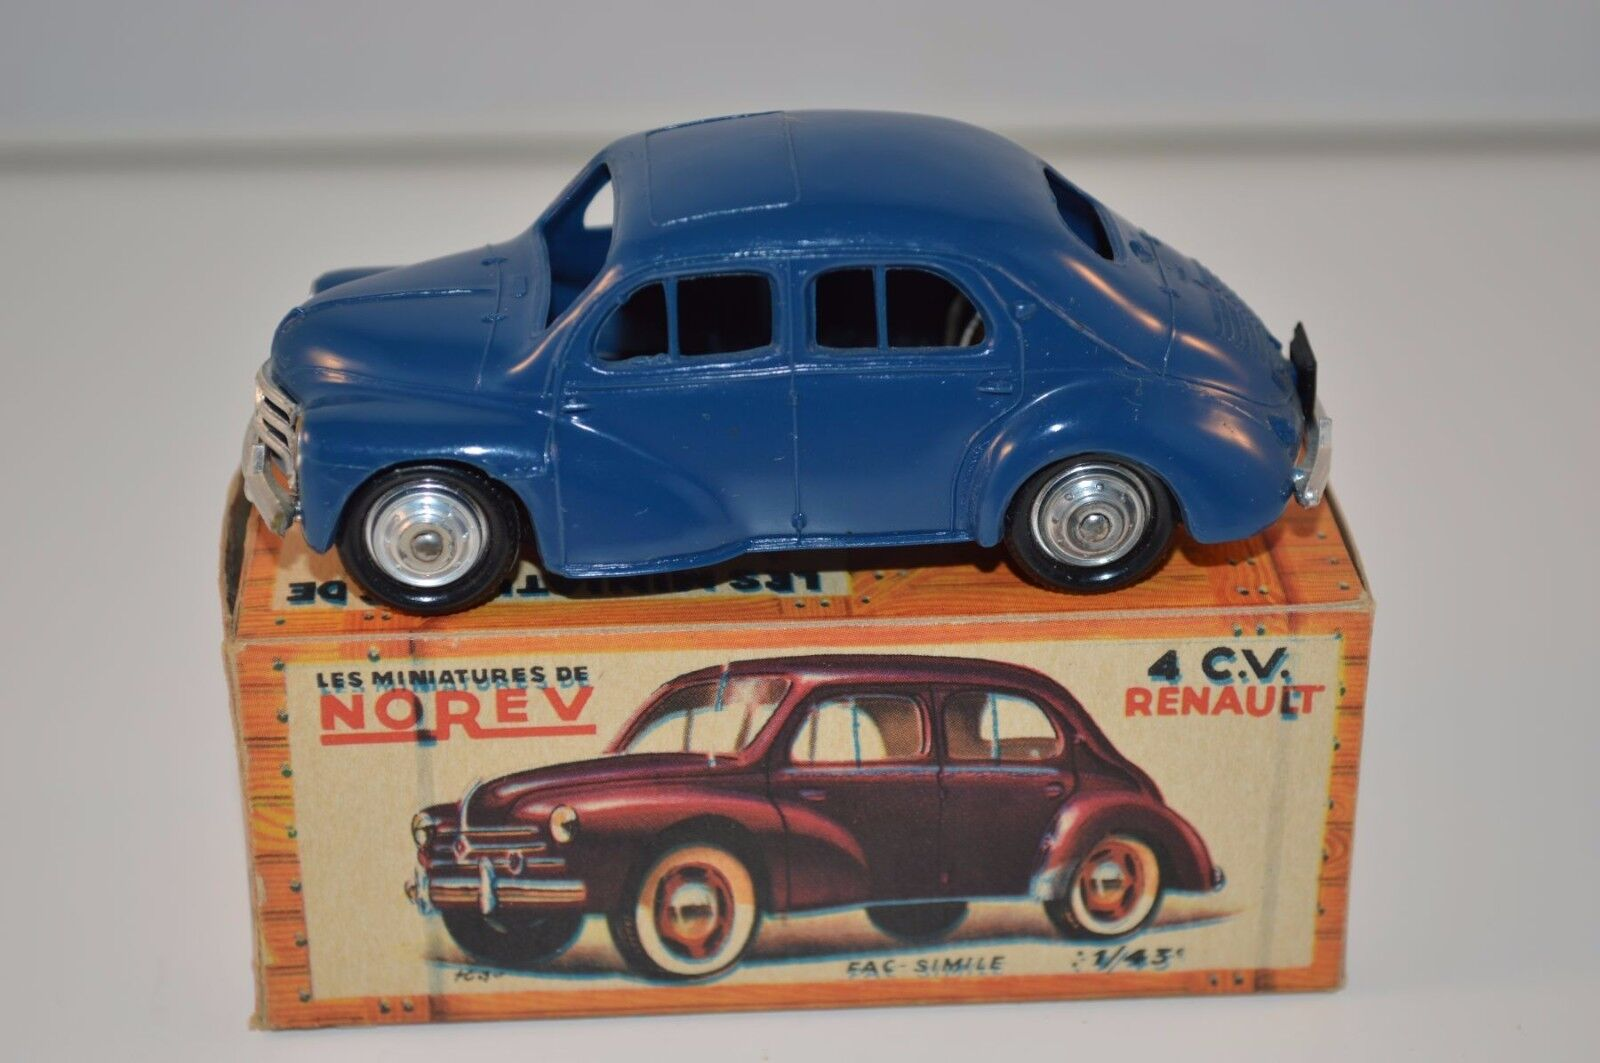 Norev 17 Renault 4CV plastique with metal bottom perfect mint in box superb